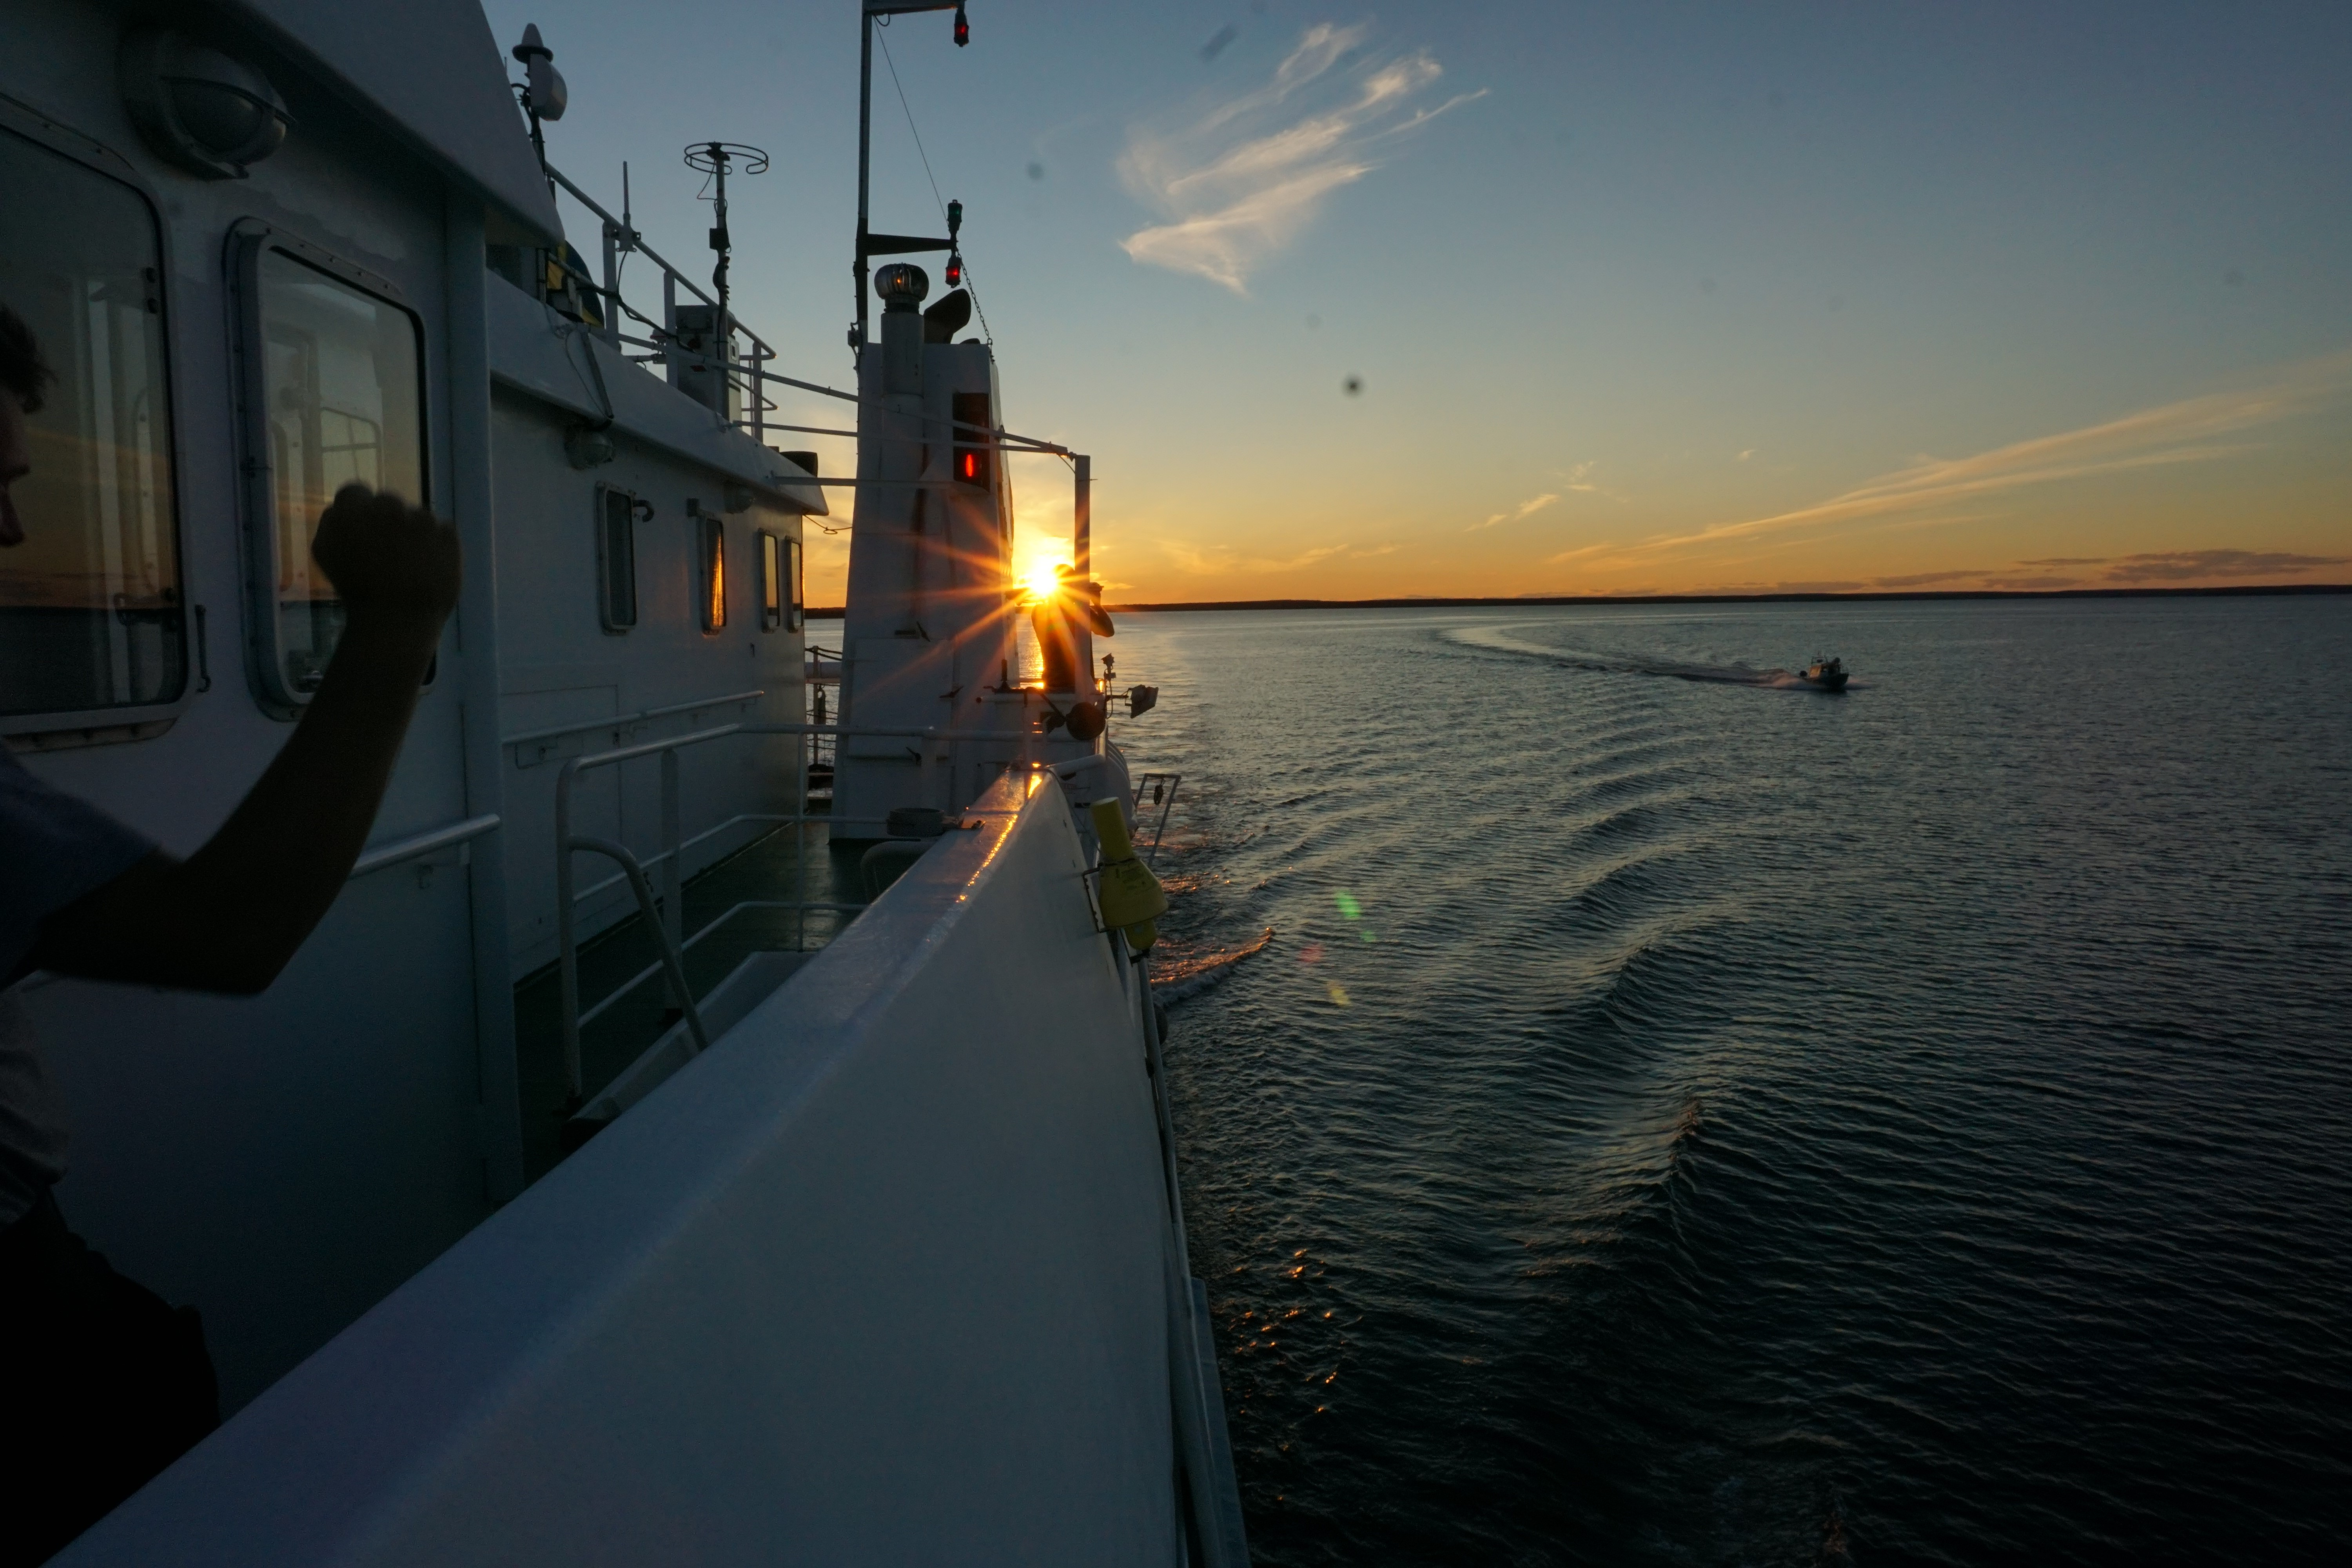 A ship and a person on board flexing arm. Sunset on the background.